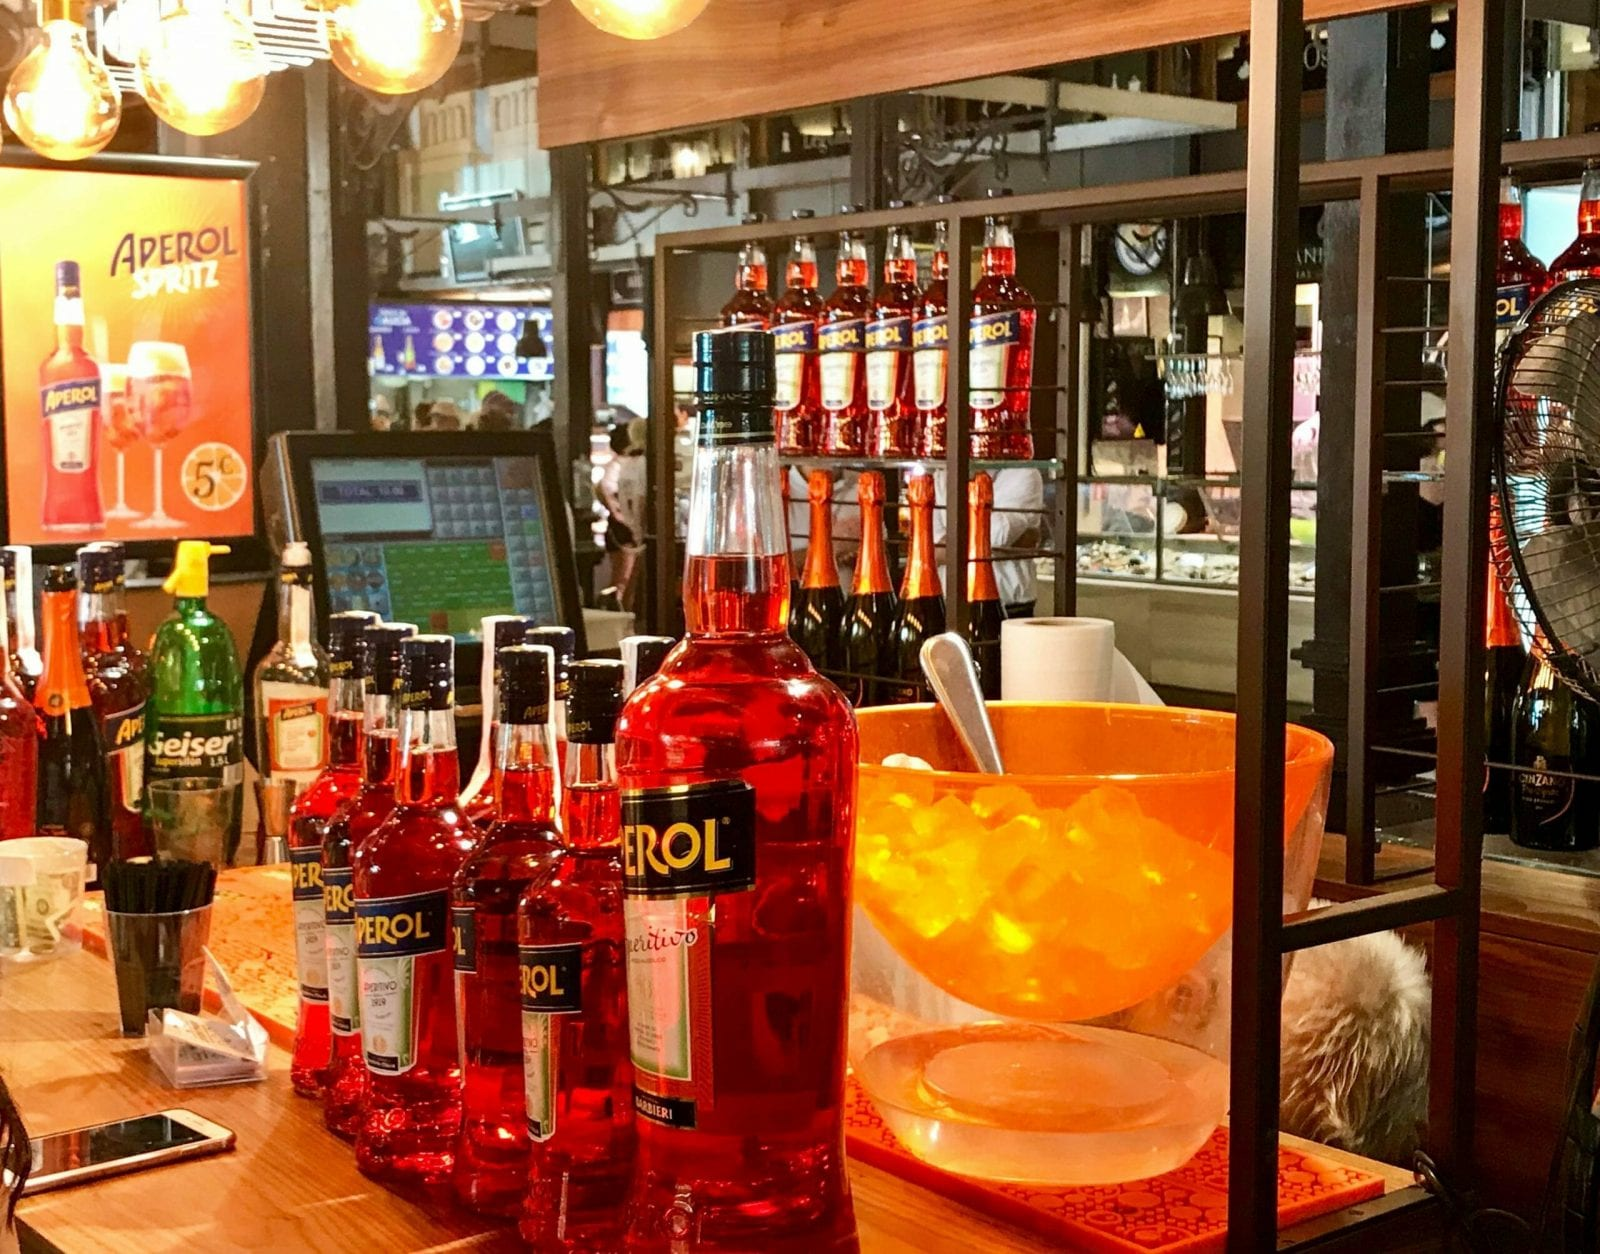 Aperol in France Dining Abroad